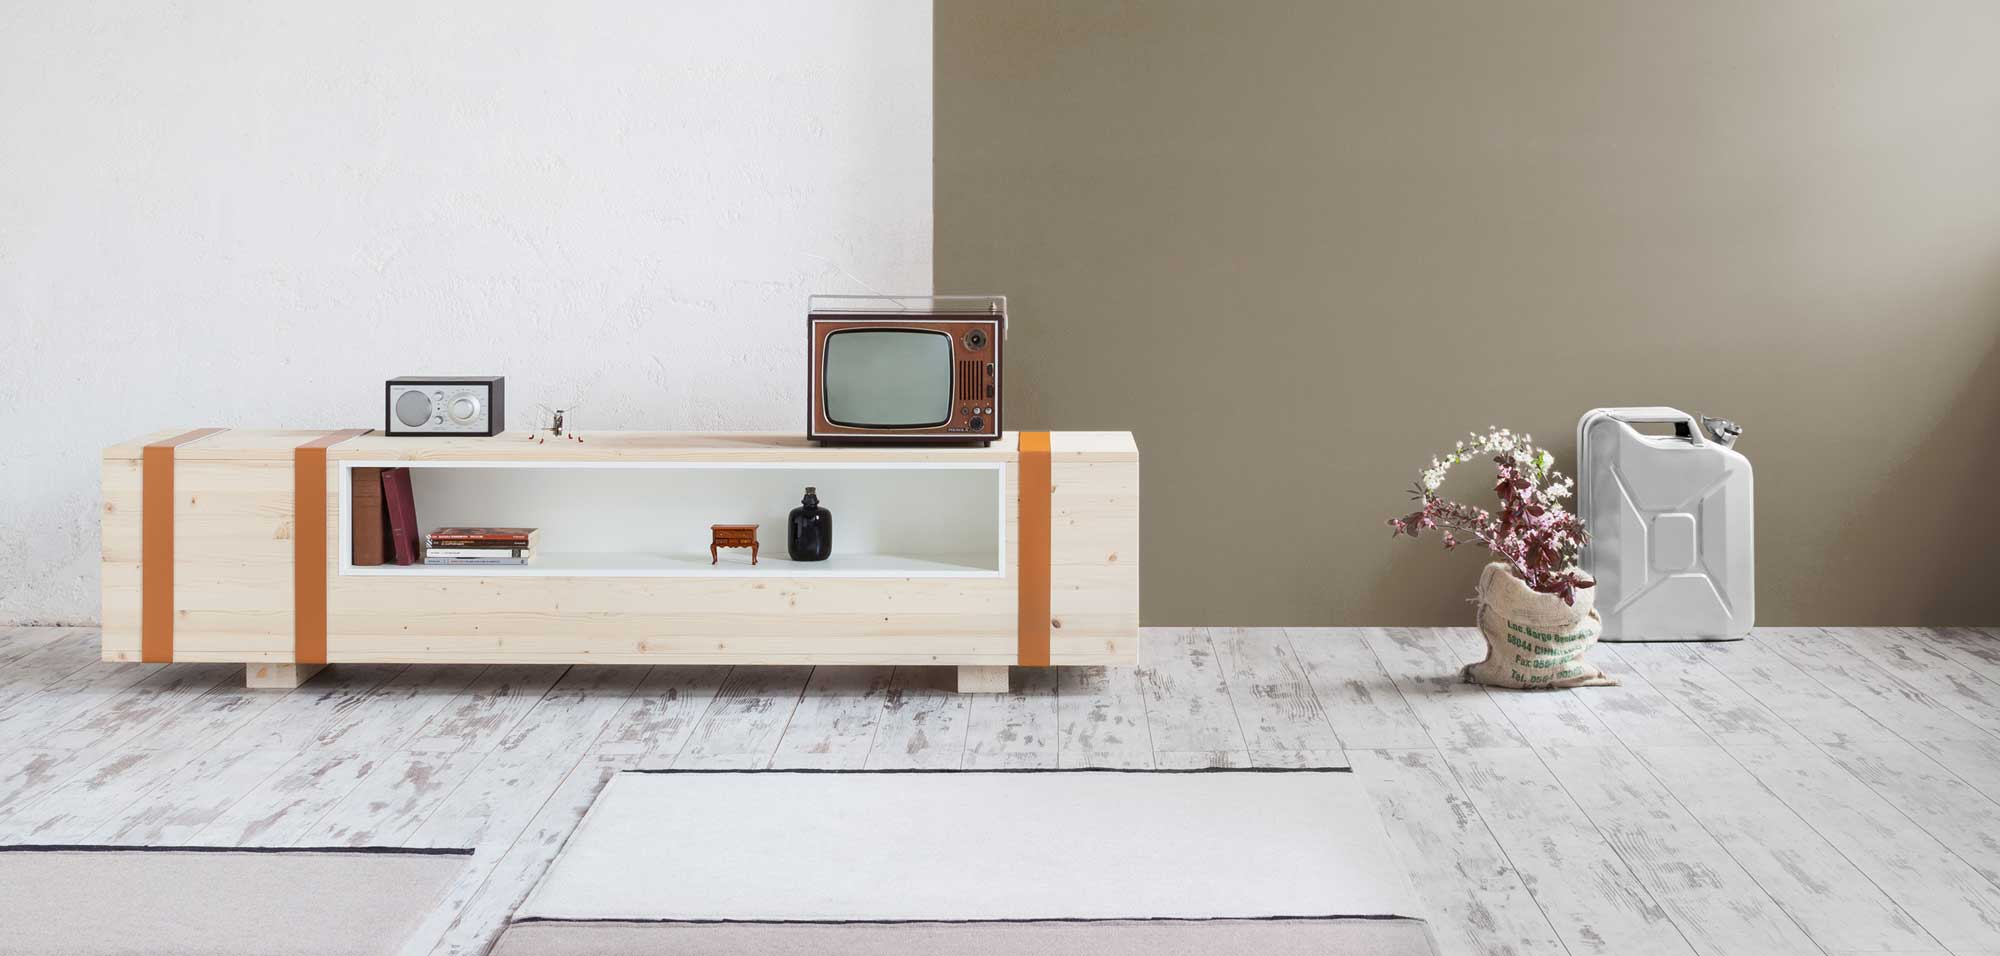 calibro storage case by daniele cristiano for formabilio